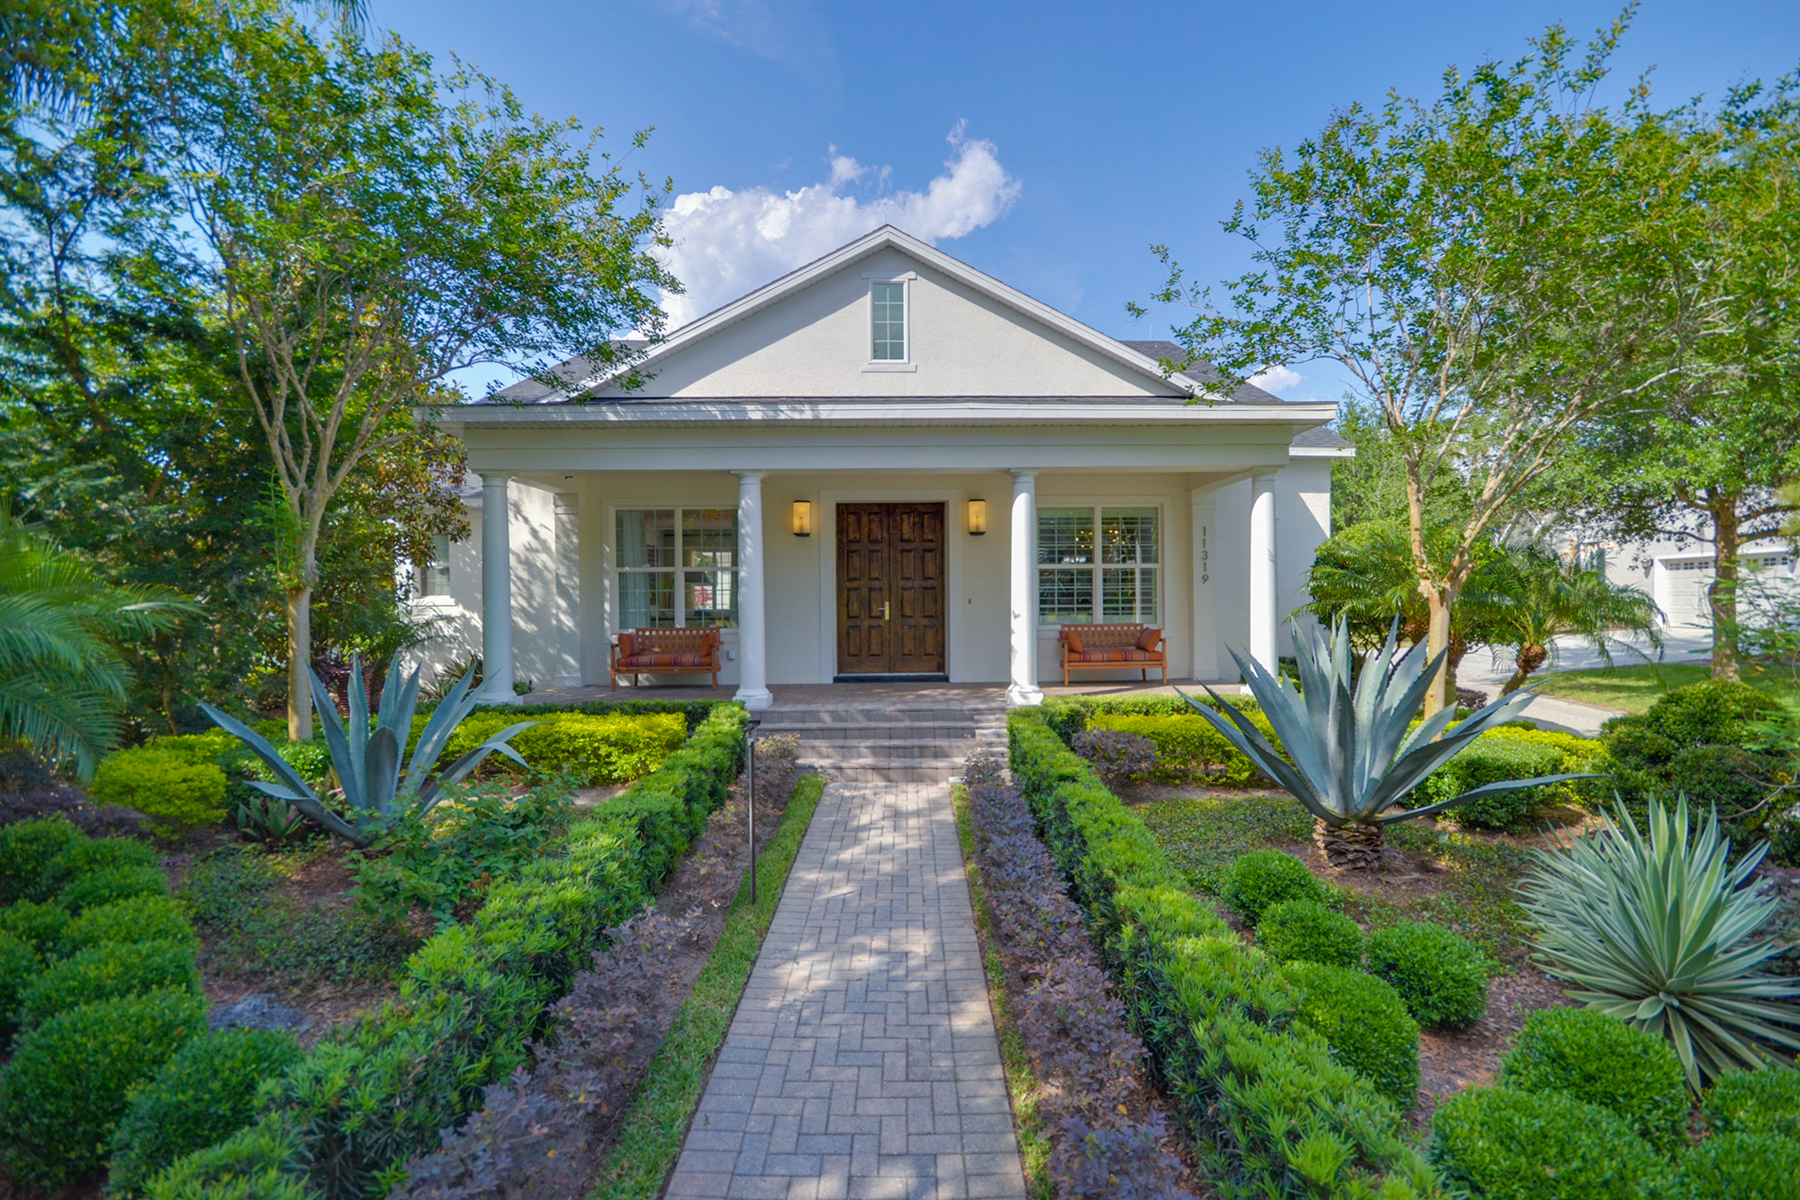 Single Family Home for Sale at Windermere, Florida 11319 N Camden Commons Dr Windermere, Florida, 34786 United States